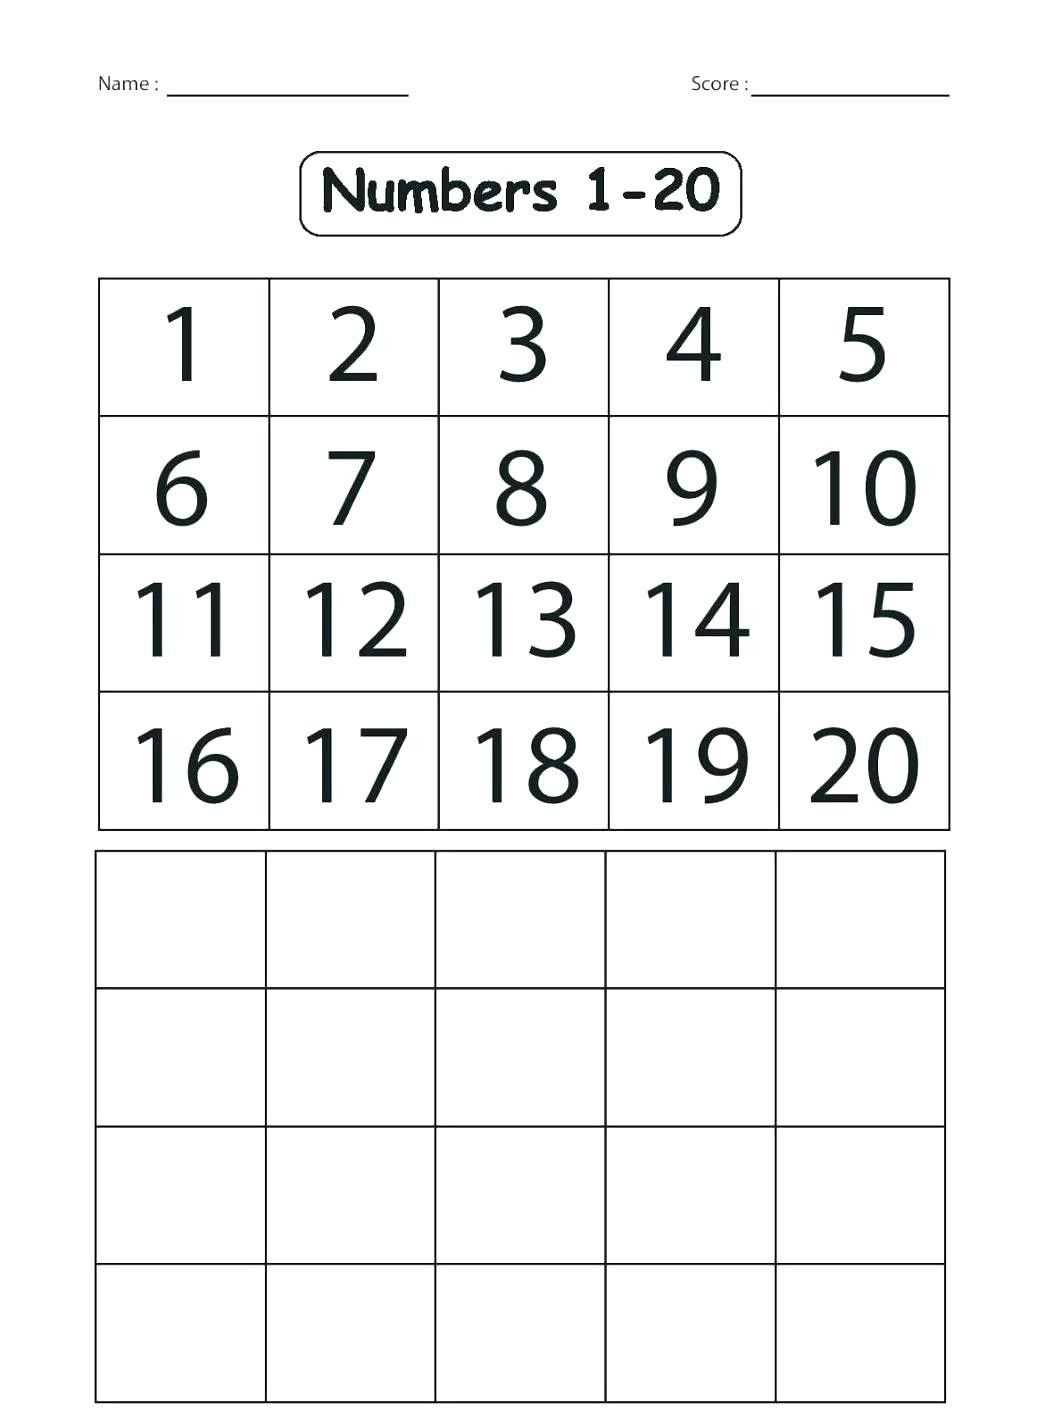 4 Numbers 1 20 Printable Free In With Images